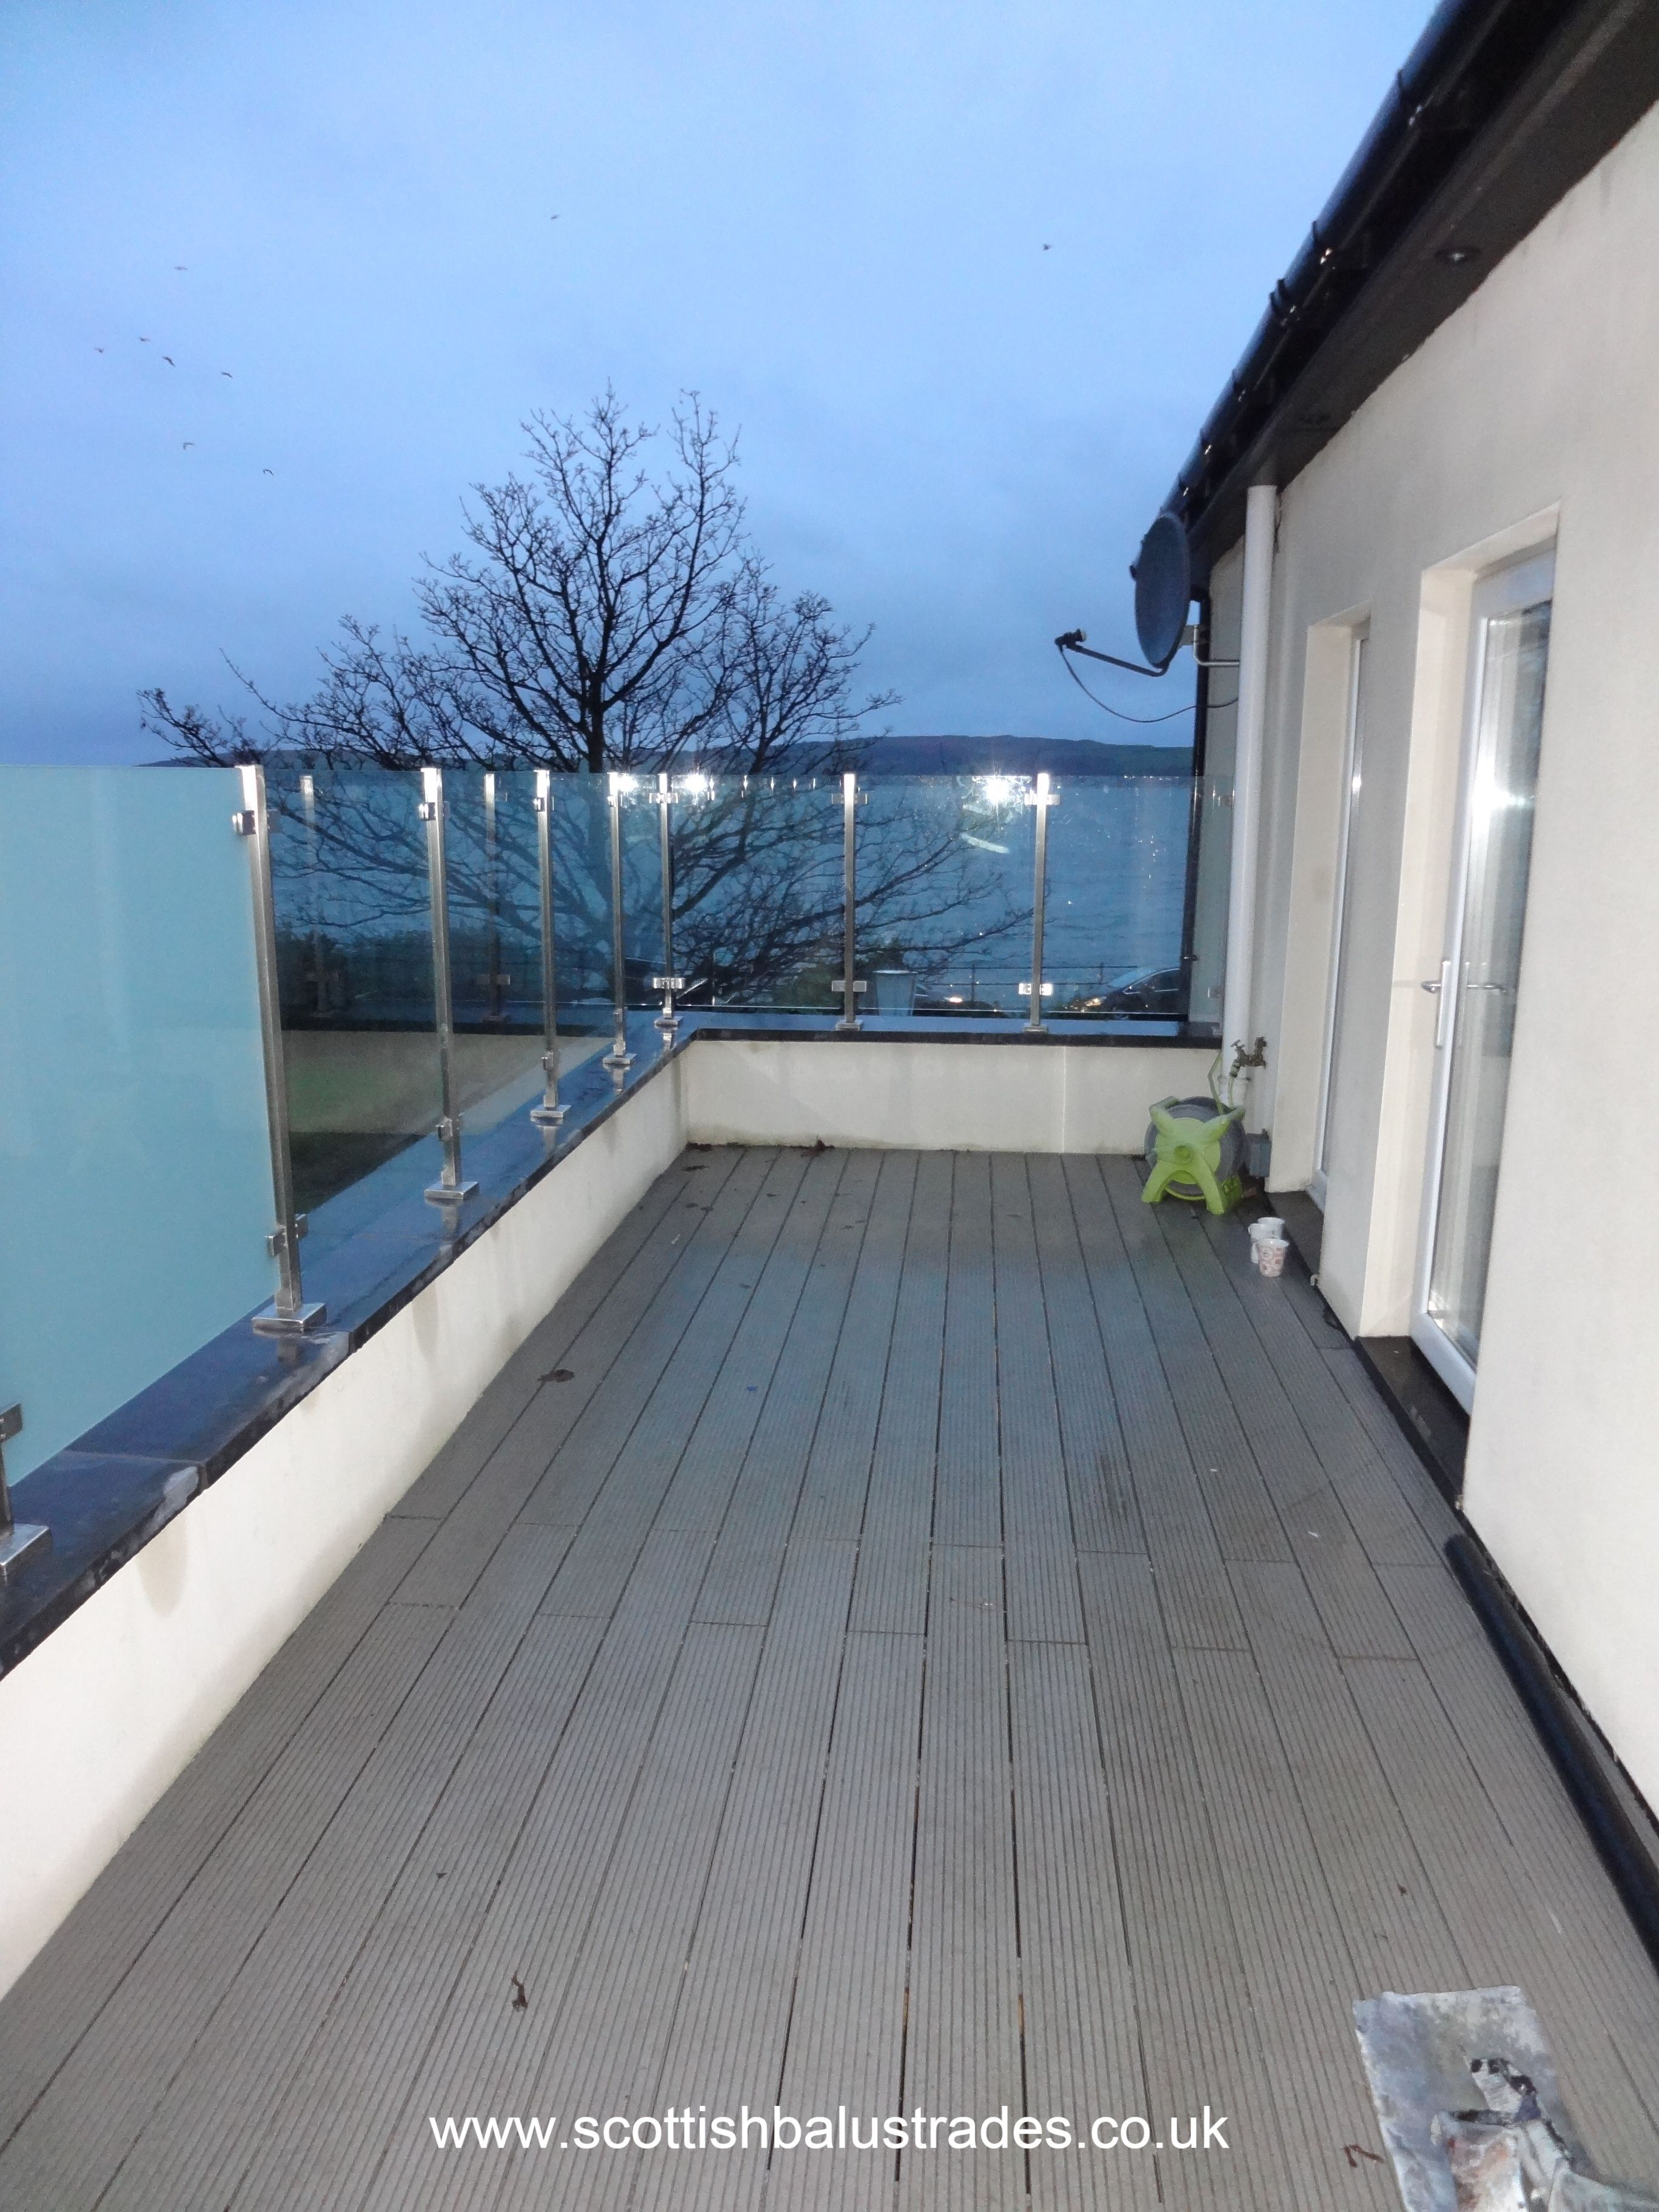 Glass Infill Photo Gallery: Square Style Glass Balustrade Without A Top Rail (semi-frameless). Square Posts And The Use Of